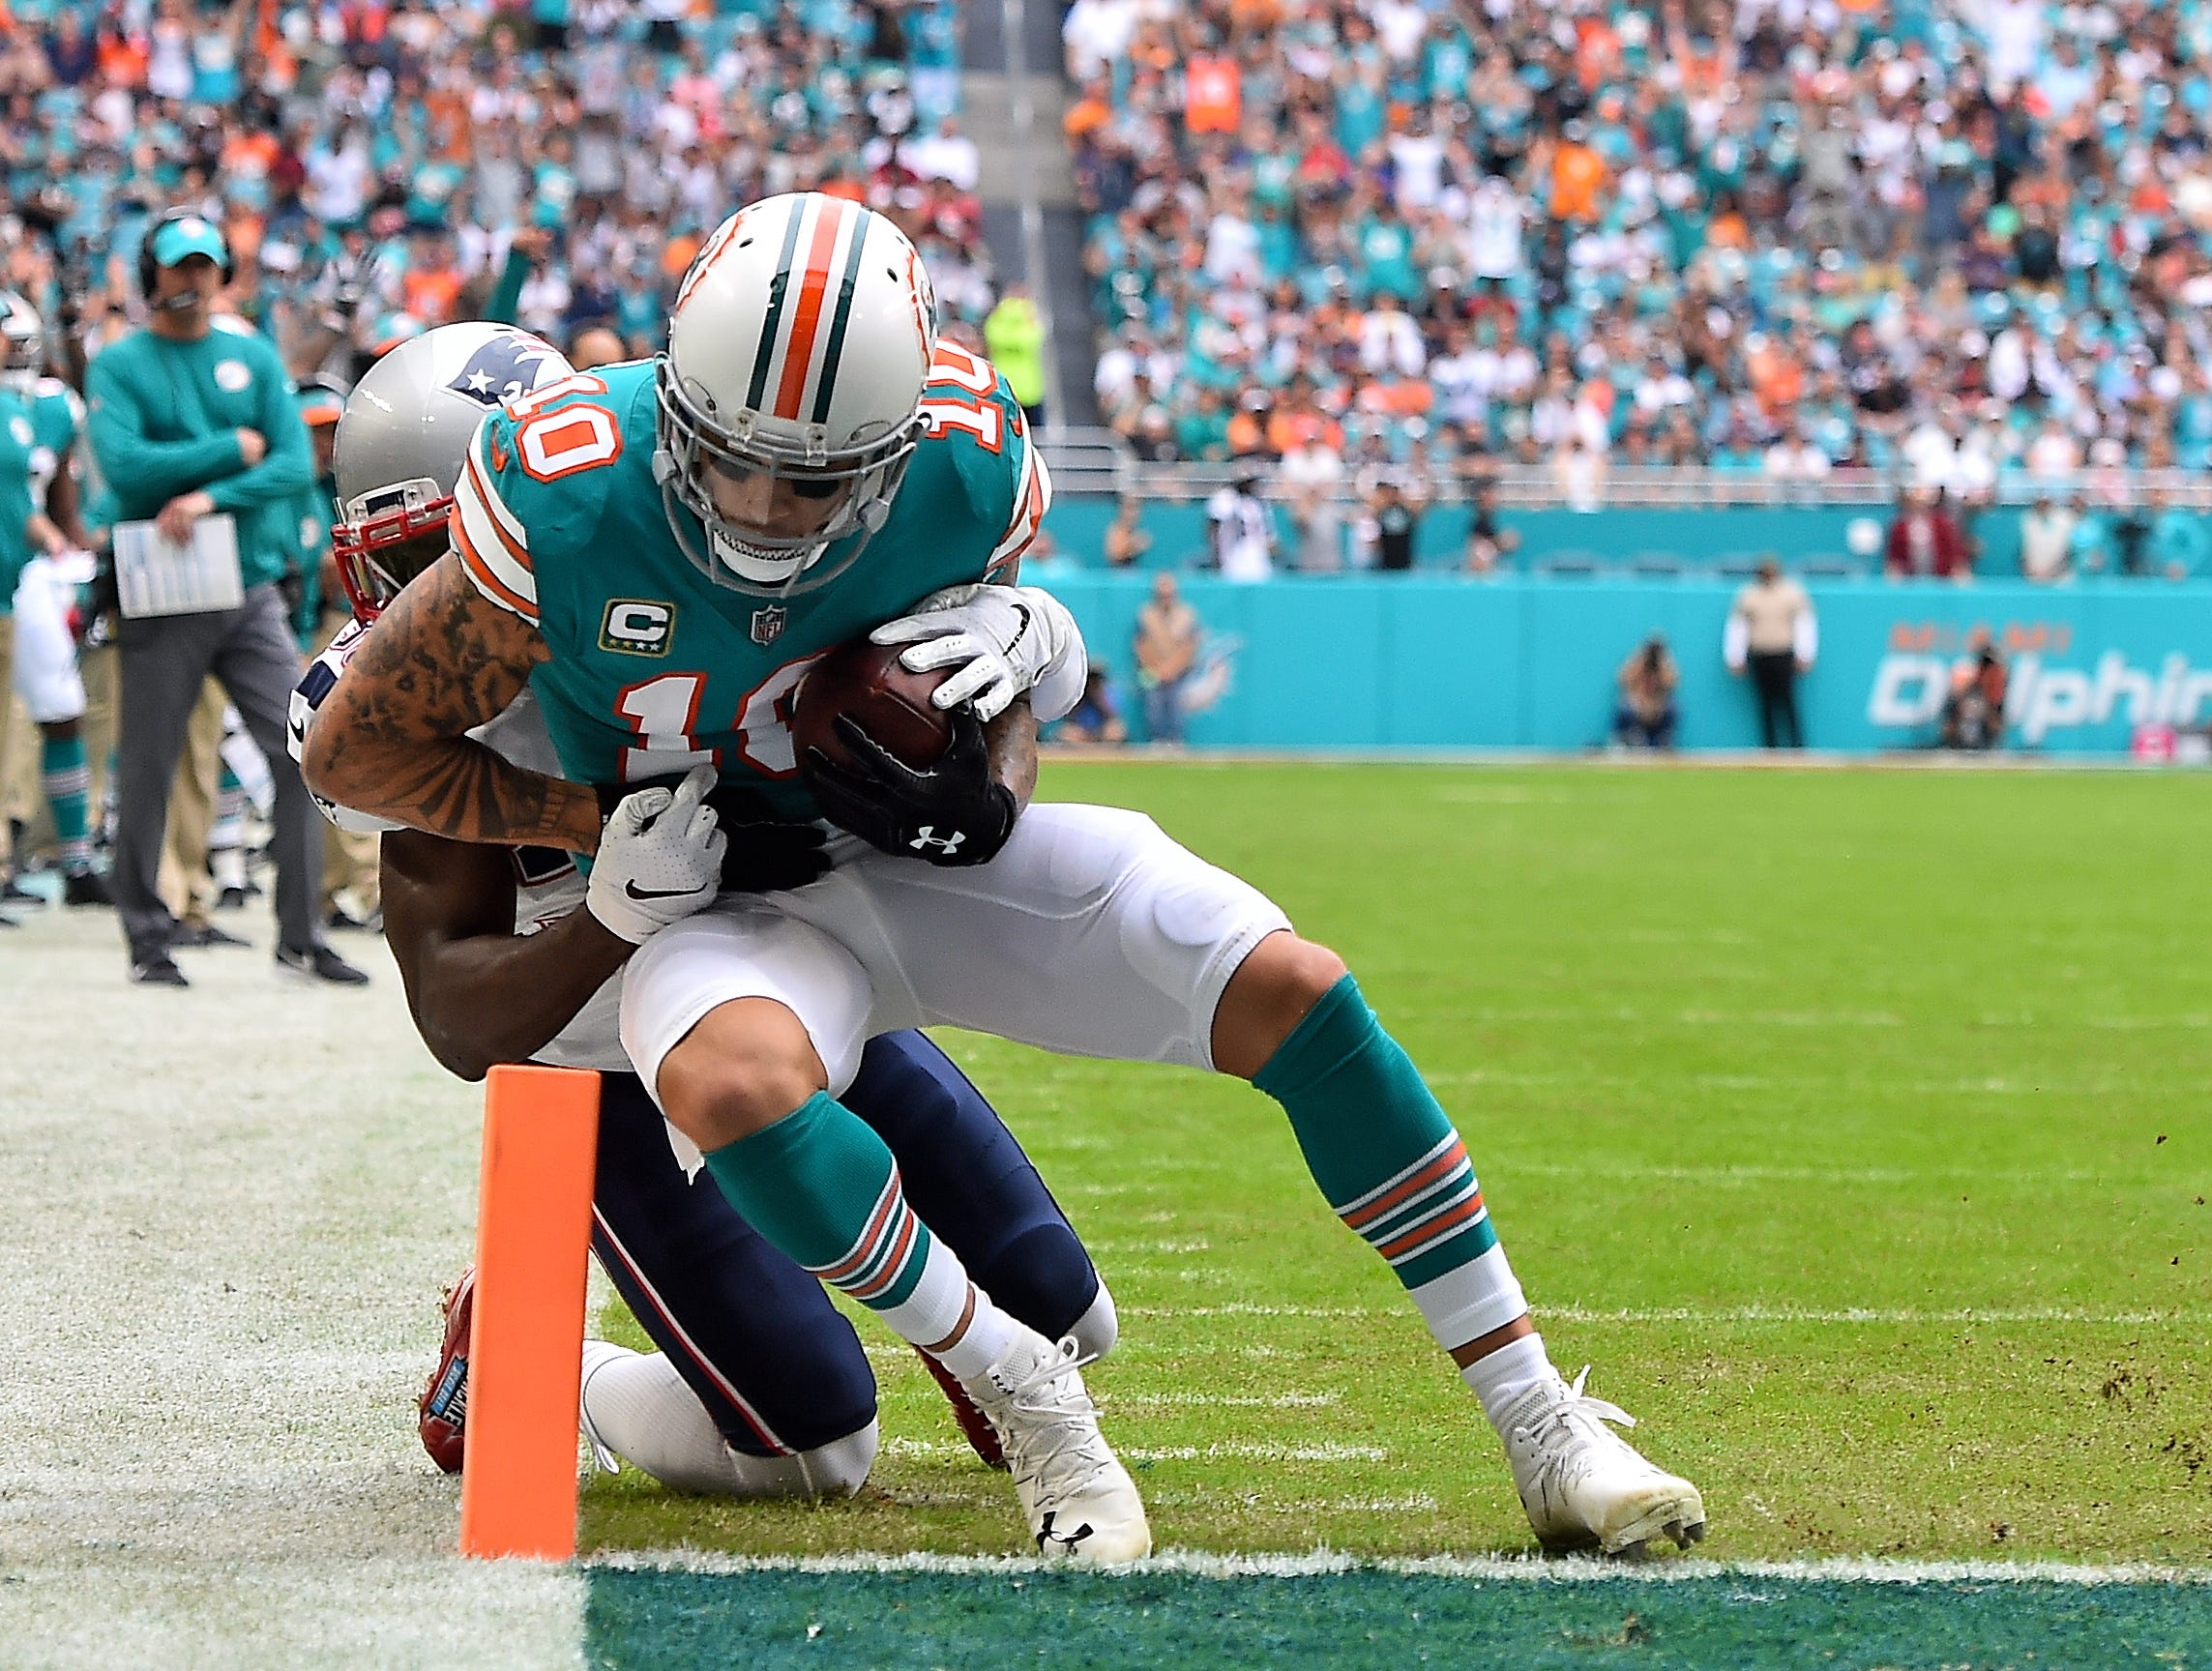 Dolphins wide receiver Kenny Stills scores a touchdown in the first half against the Patriots.